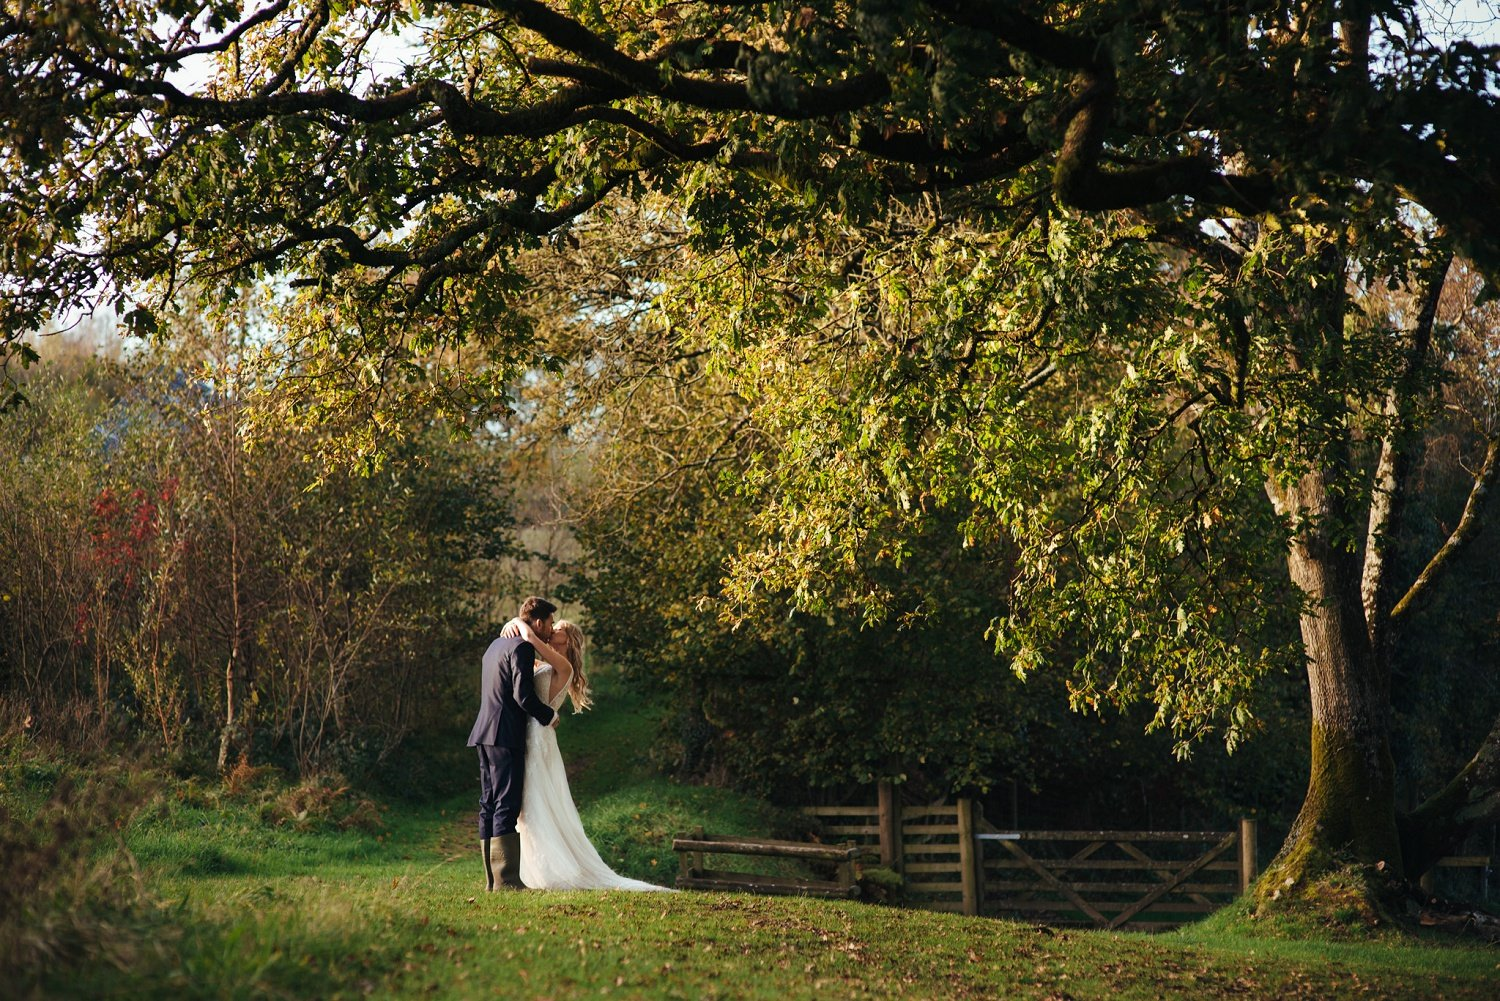 Bride and groom romantic kiss under an old oak at Tree Top Escape, Devon, in the golden evening light